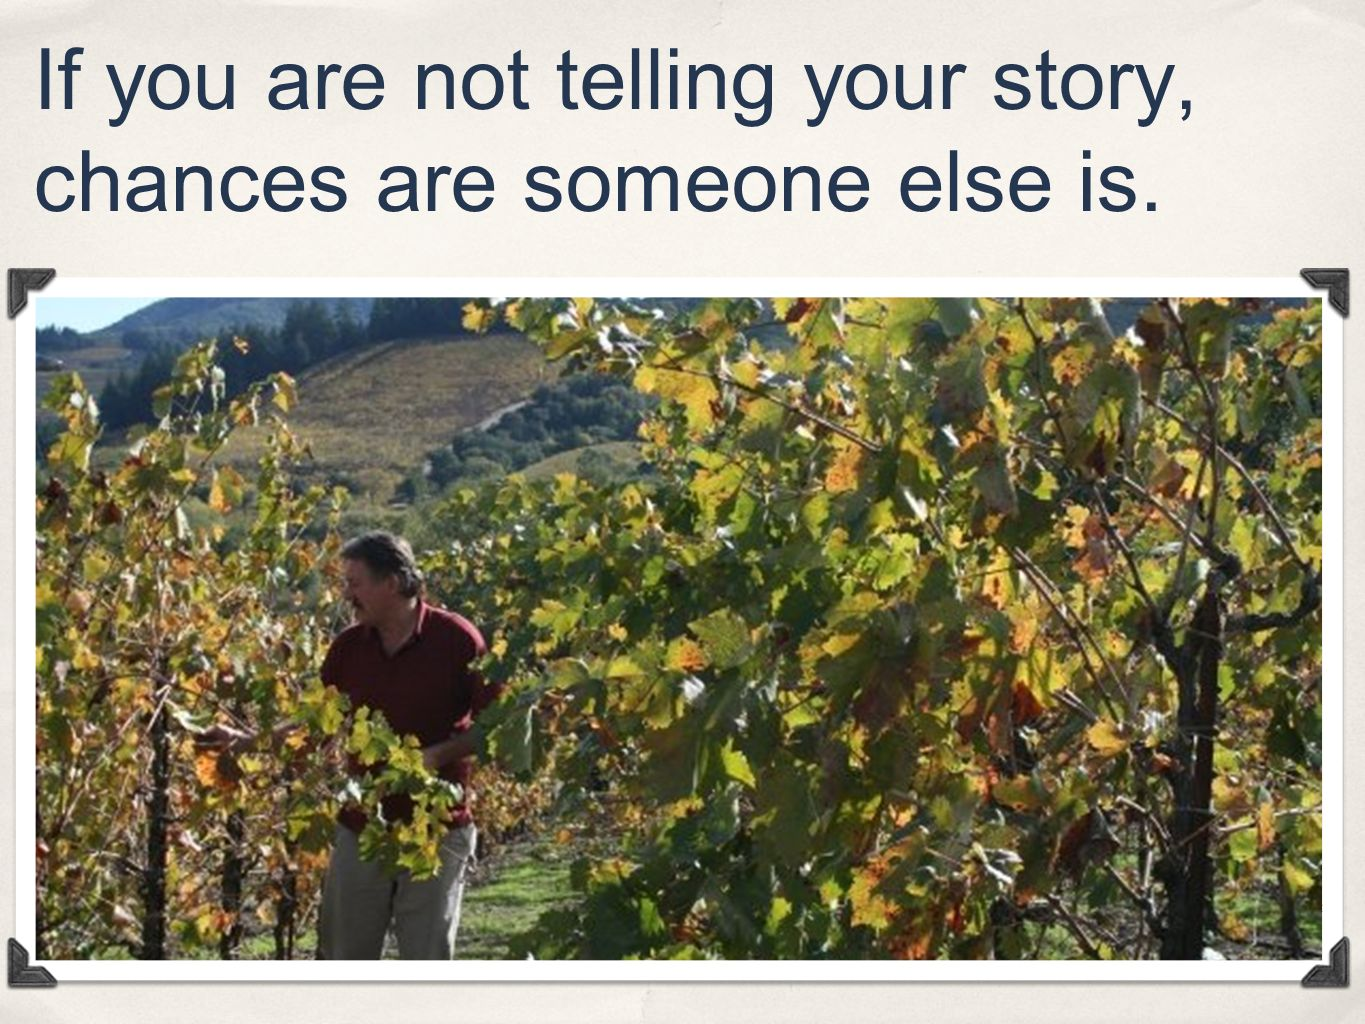 If you are not telling your story, chances are someone else is.